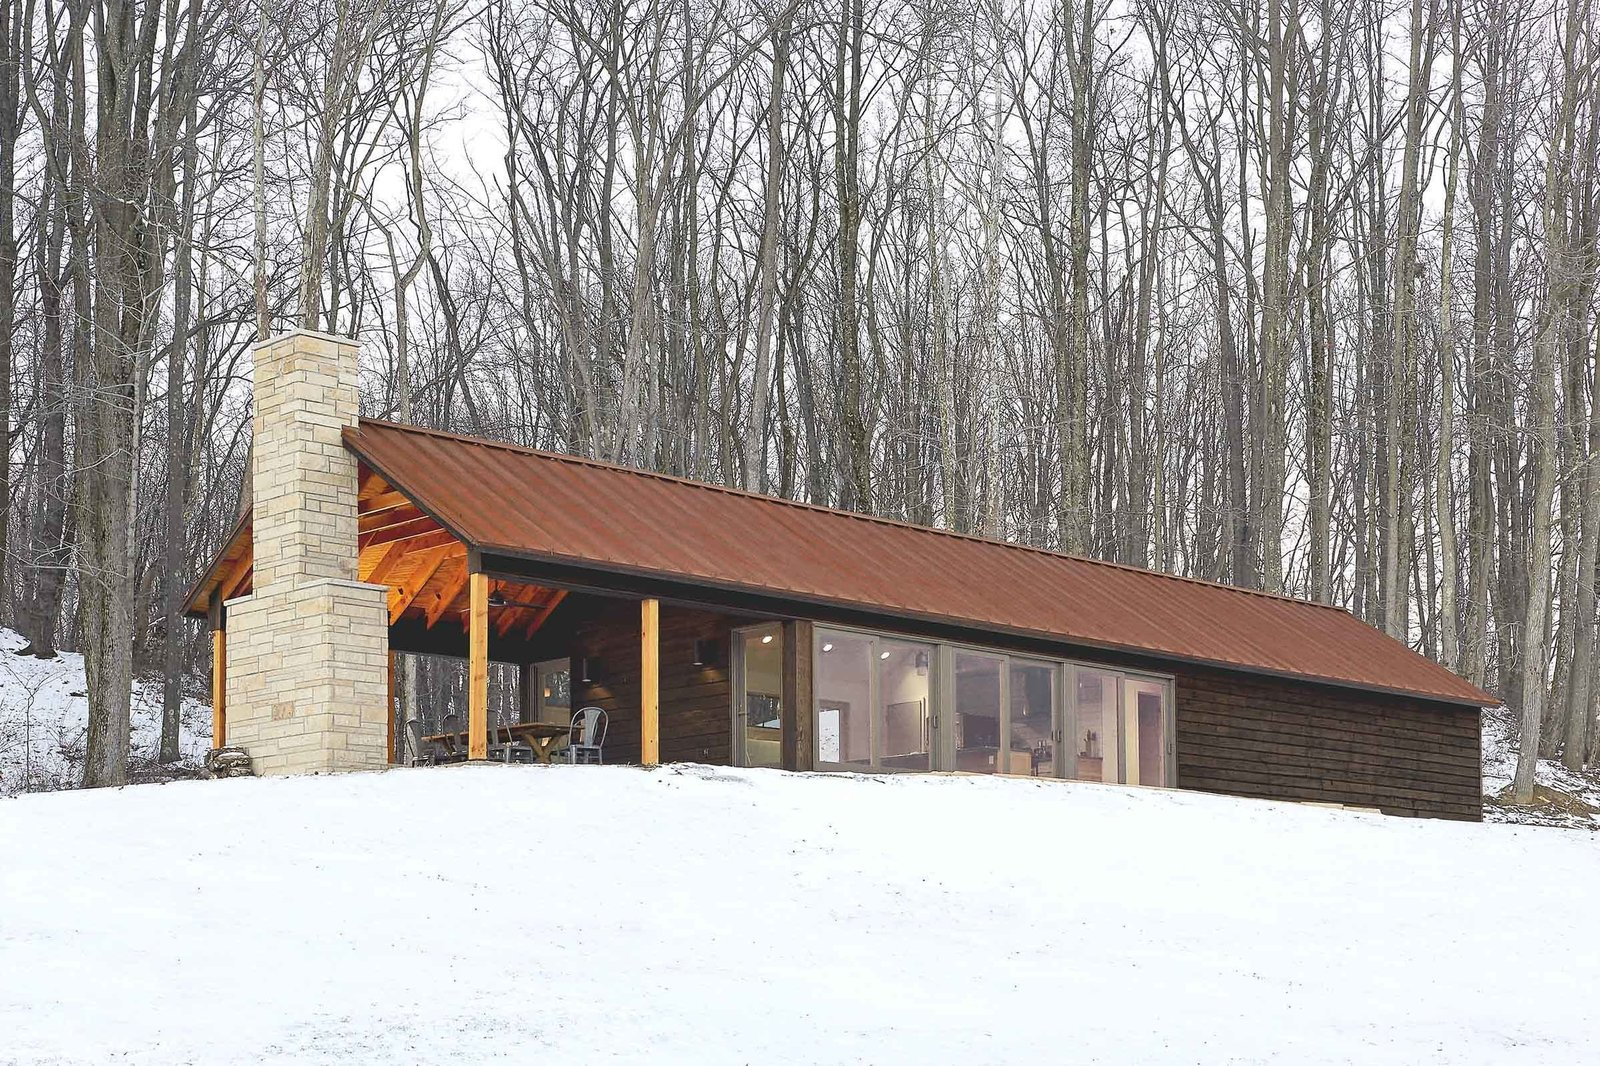 The father of architect Greg Dutton wished to build a cabin on the family farm, located within Appalachian Ohio and home to 400 heads of cattle. Dutton, of Pittsburgh and Columbus, Ohio-based Midland Architecture, presented this design as his father's birthday present in 2012. Finished in 2014, the 900-square-foot cabin operates entirely off-the-grid. Tagged: Exterior, House, Metal Roof Material, and Cabin Building Type.  Photo 78 of 101 in 101 Best Modern Cabins from Modern Homes on Farms